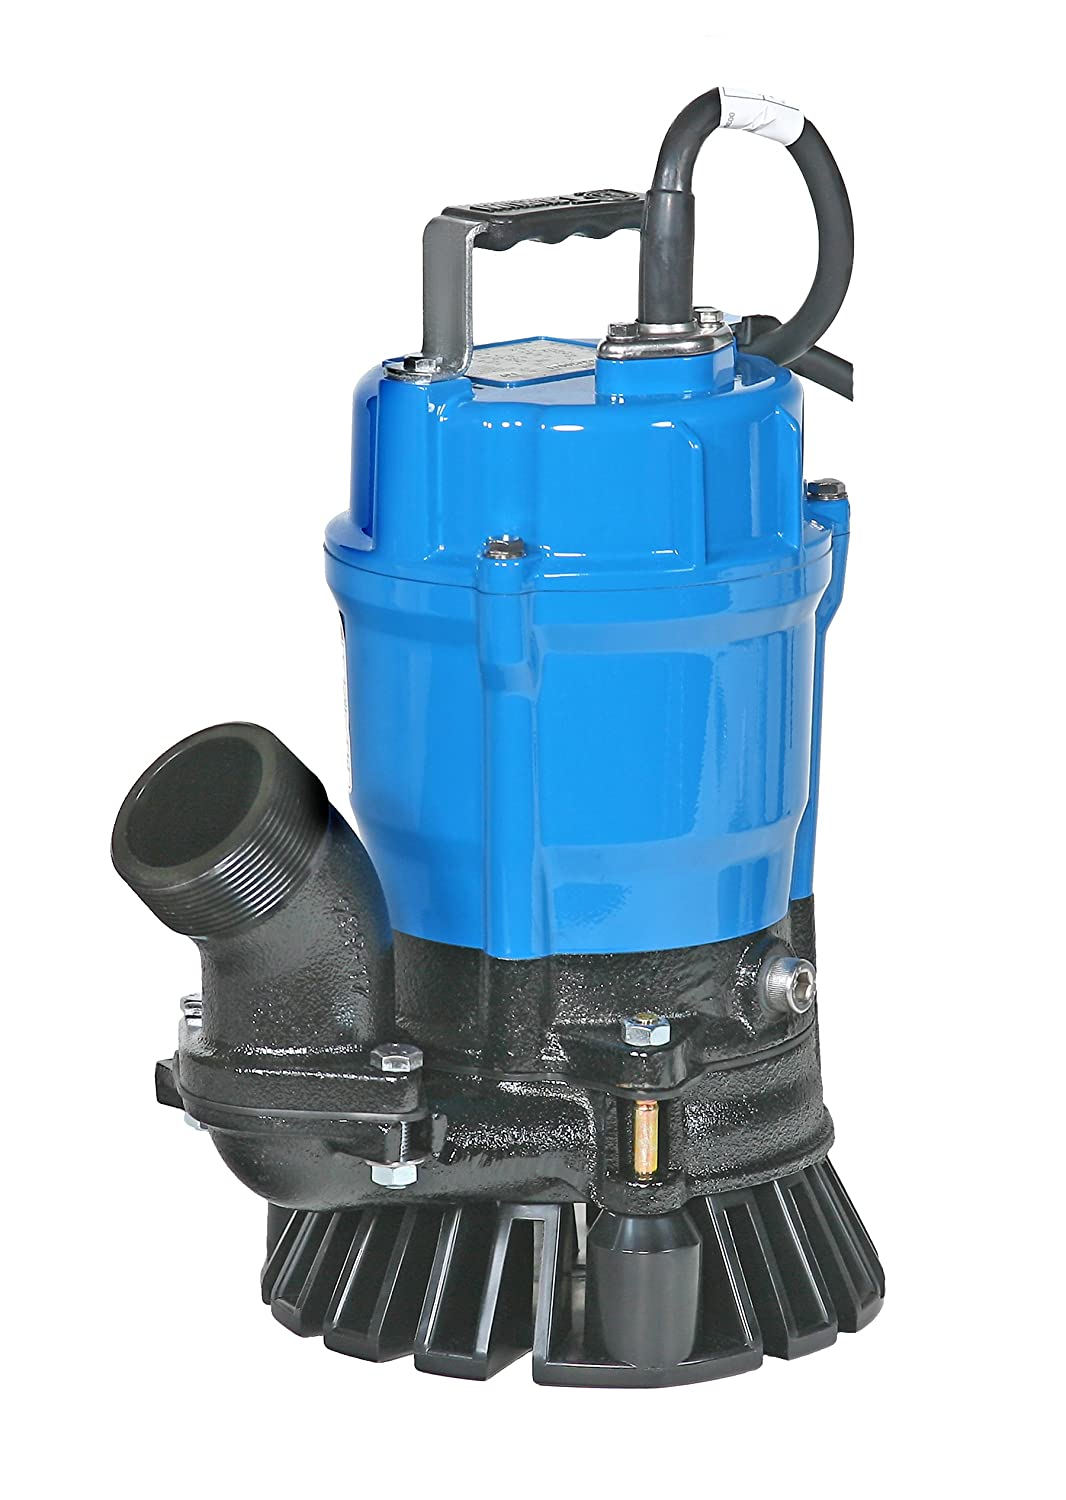 "Tsurumi HS2.4S; semi-Vortex Submersible Trash Pump w/Agitator, 1/2hp, 115V, 2"" Discharge"